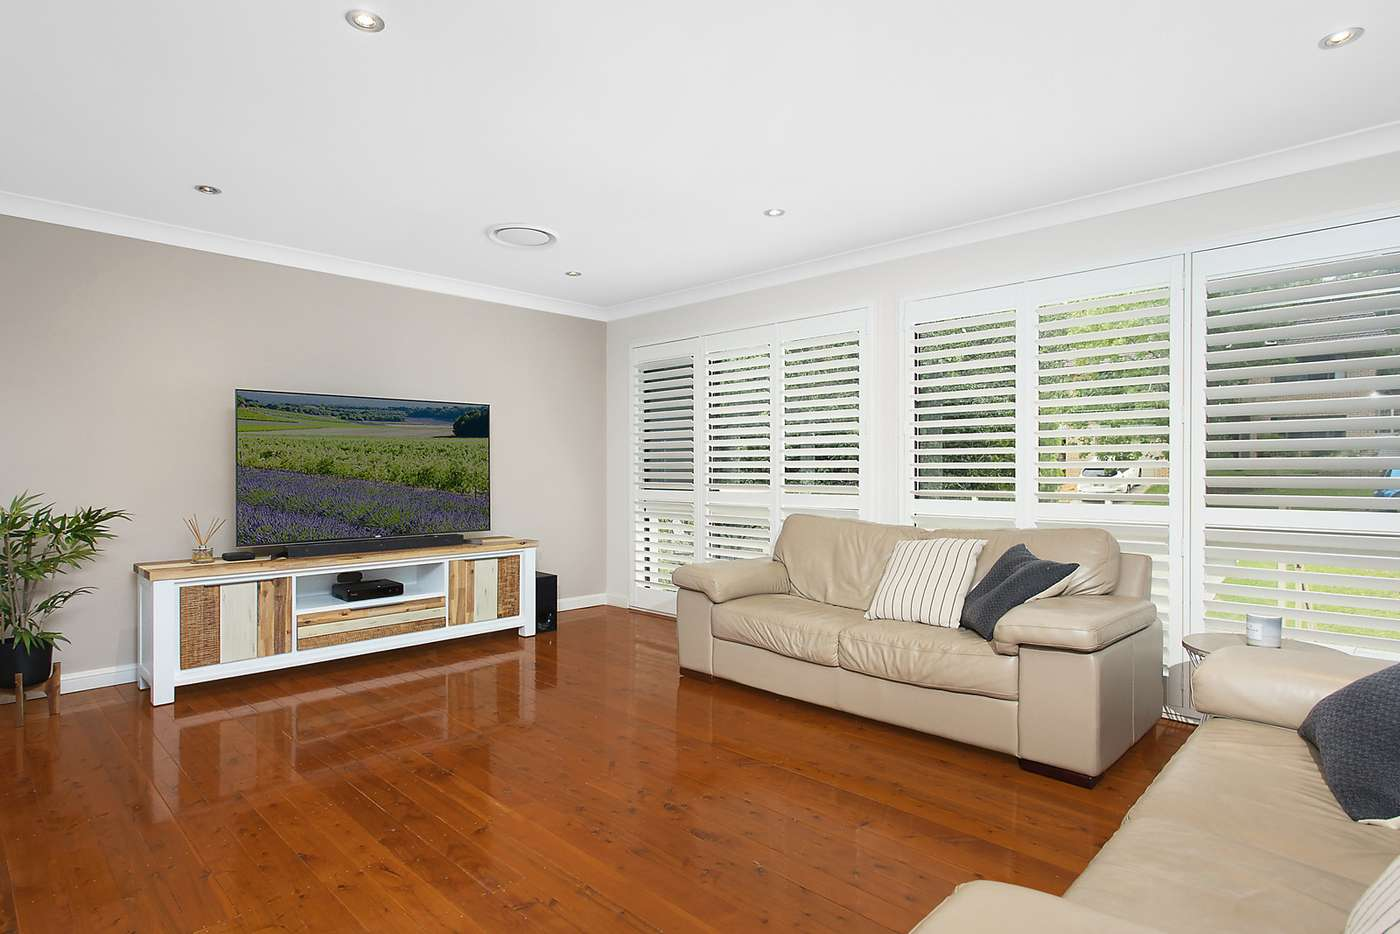 Fifth view of Homely house listing, 12 Blanchard Crescent, Balgownie NSW 2519